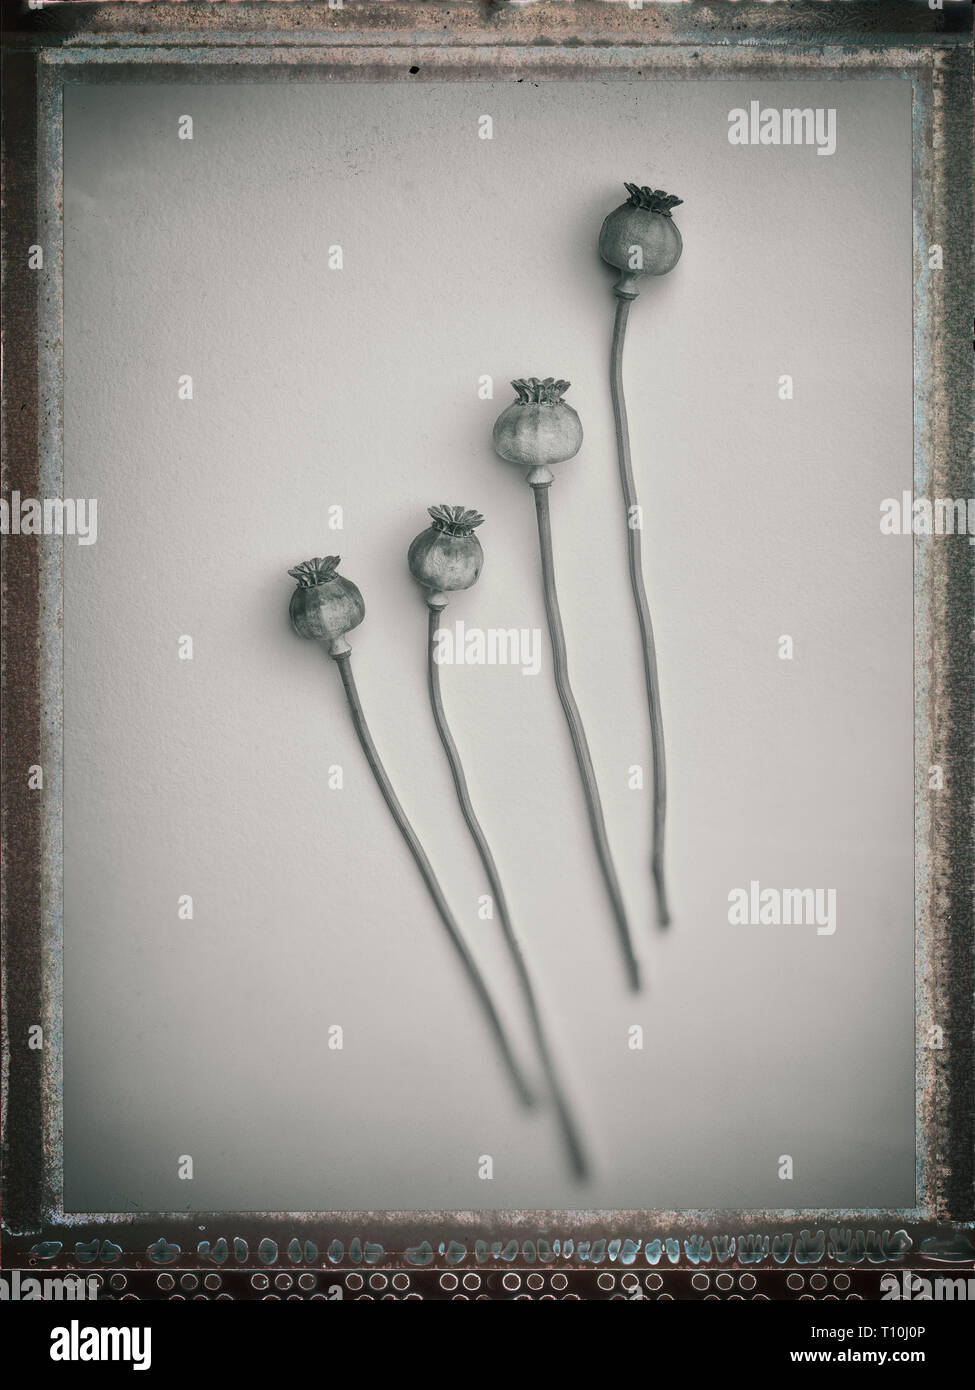 black and white image of dried poppy plants on a plain background - Stock Image